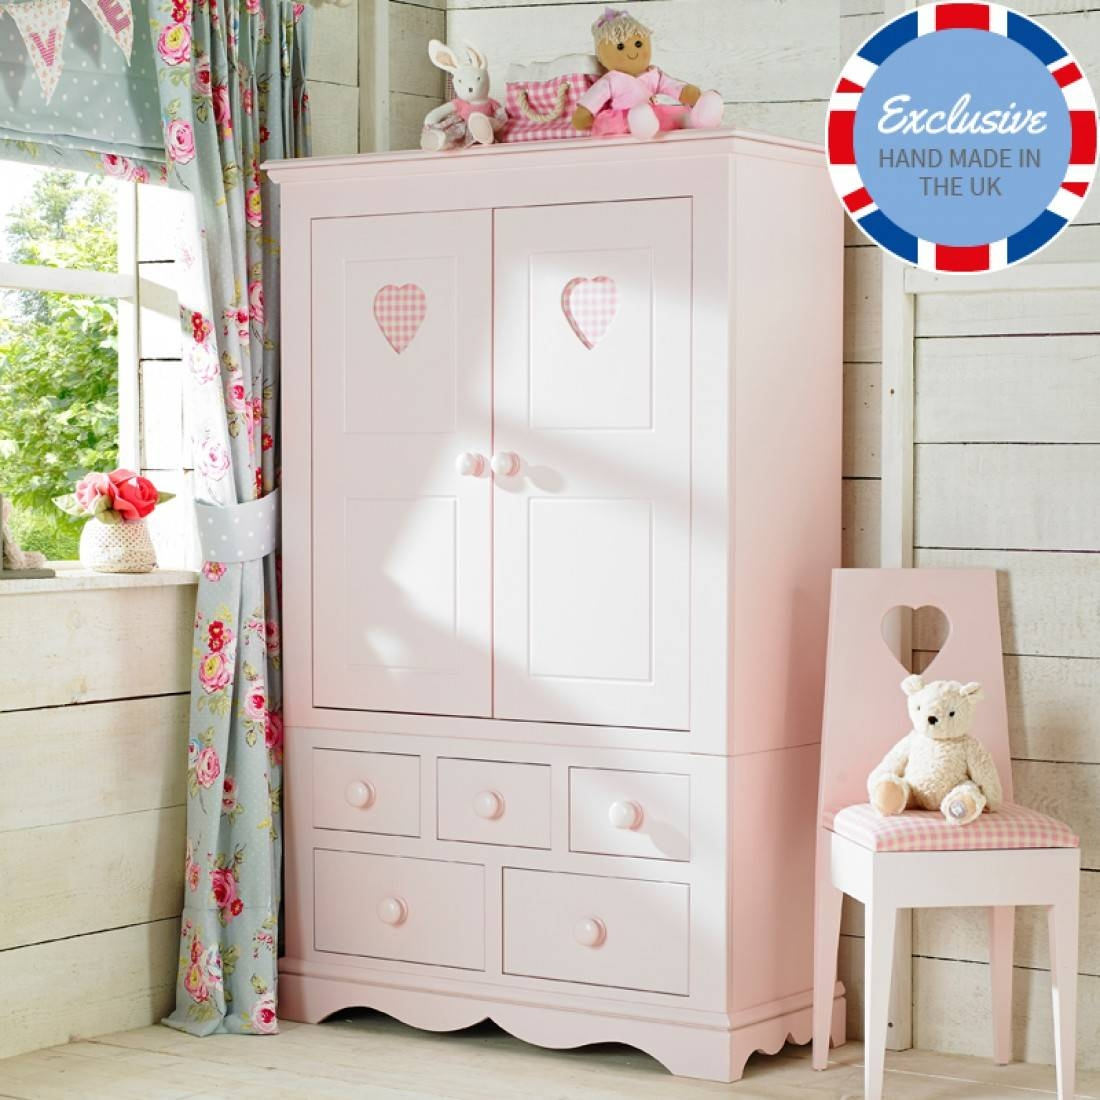 Childrens Wardrobes | Childrens Furniture - Little Lucy Willow Uk throughout Childrens Double Rail Wardrobes (Image 19 of 30)